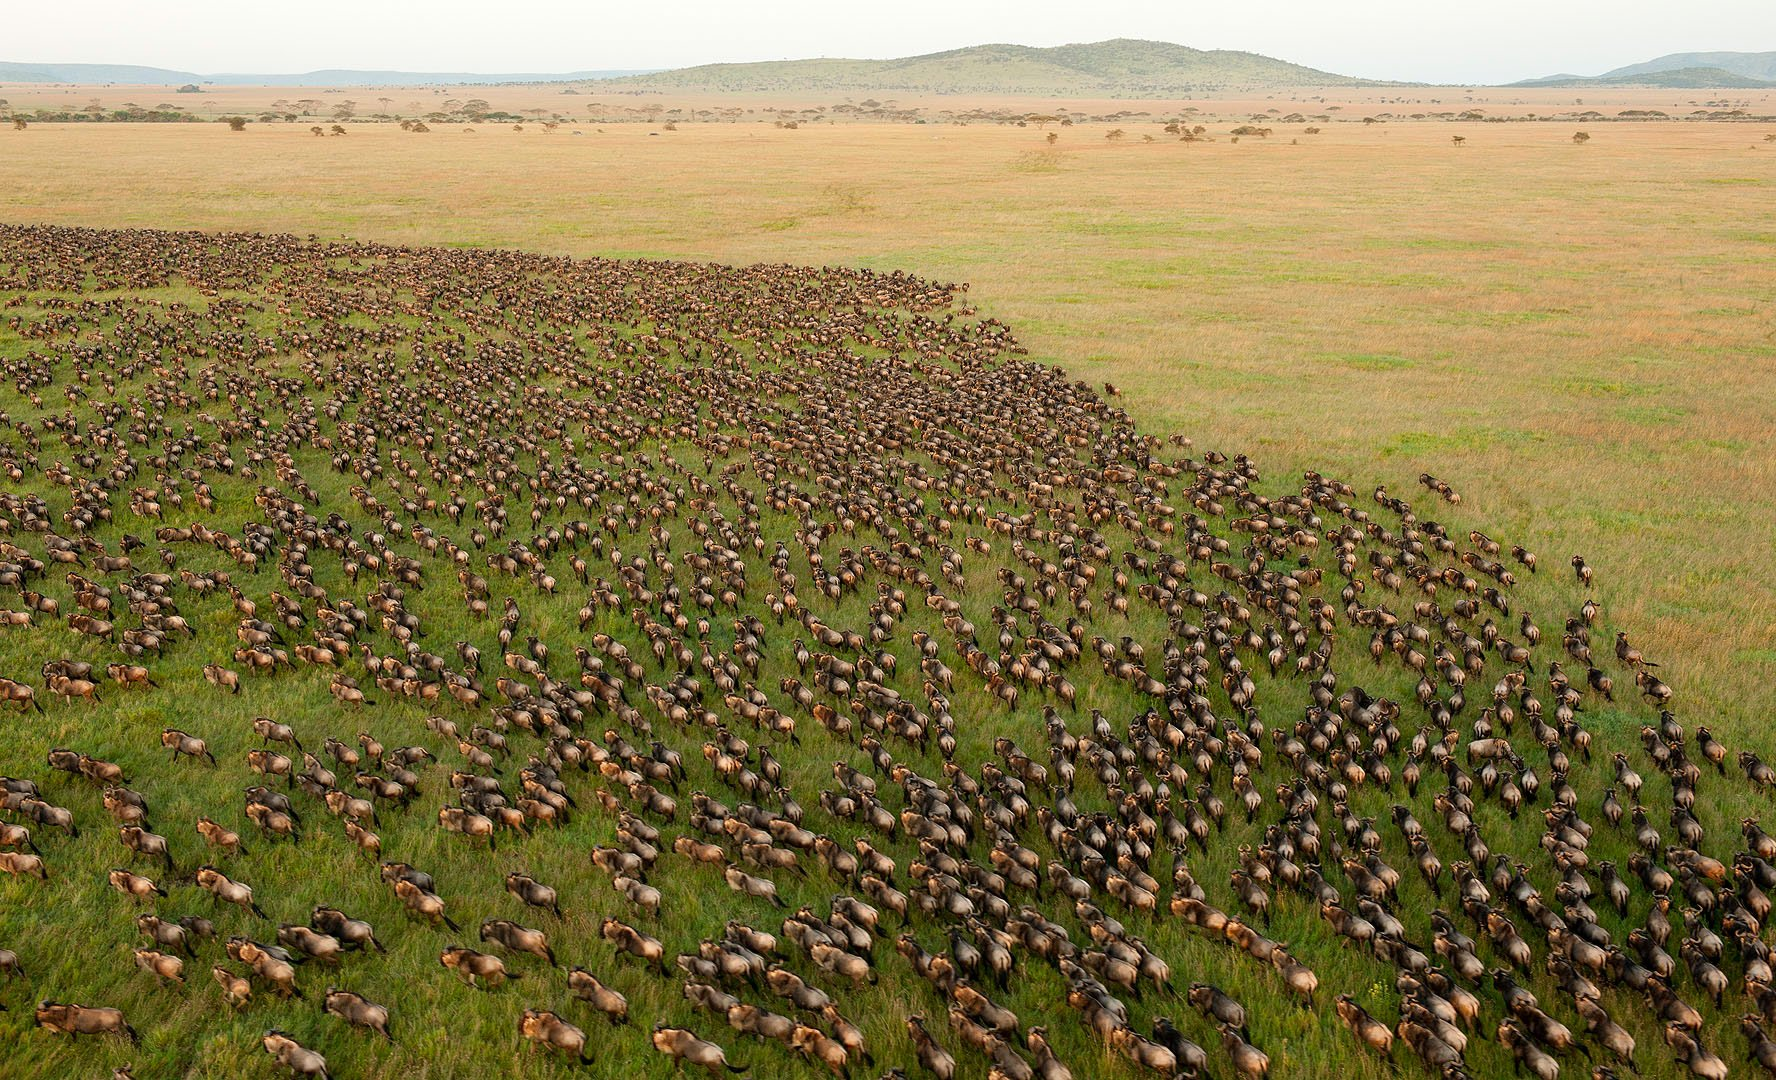 The migration moves on the plains of the Serengeti, Tanzania, Crooked Compass